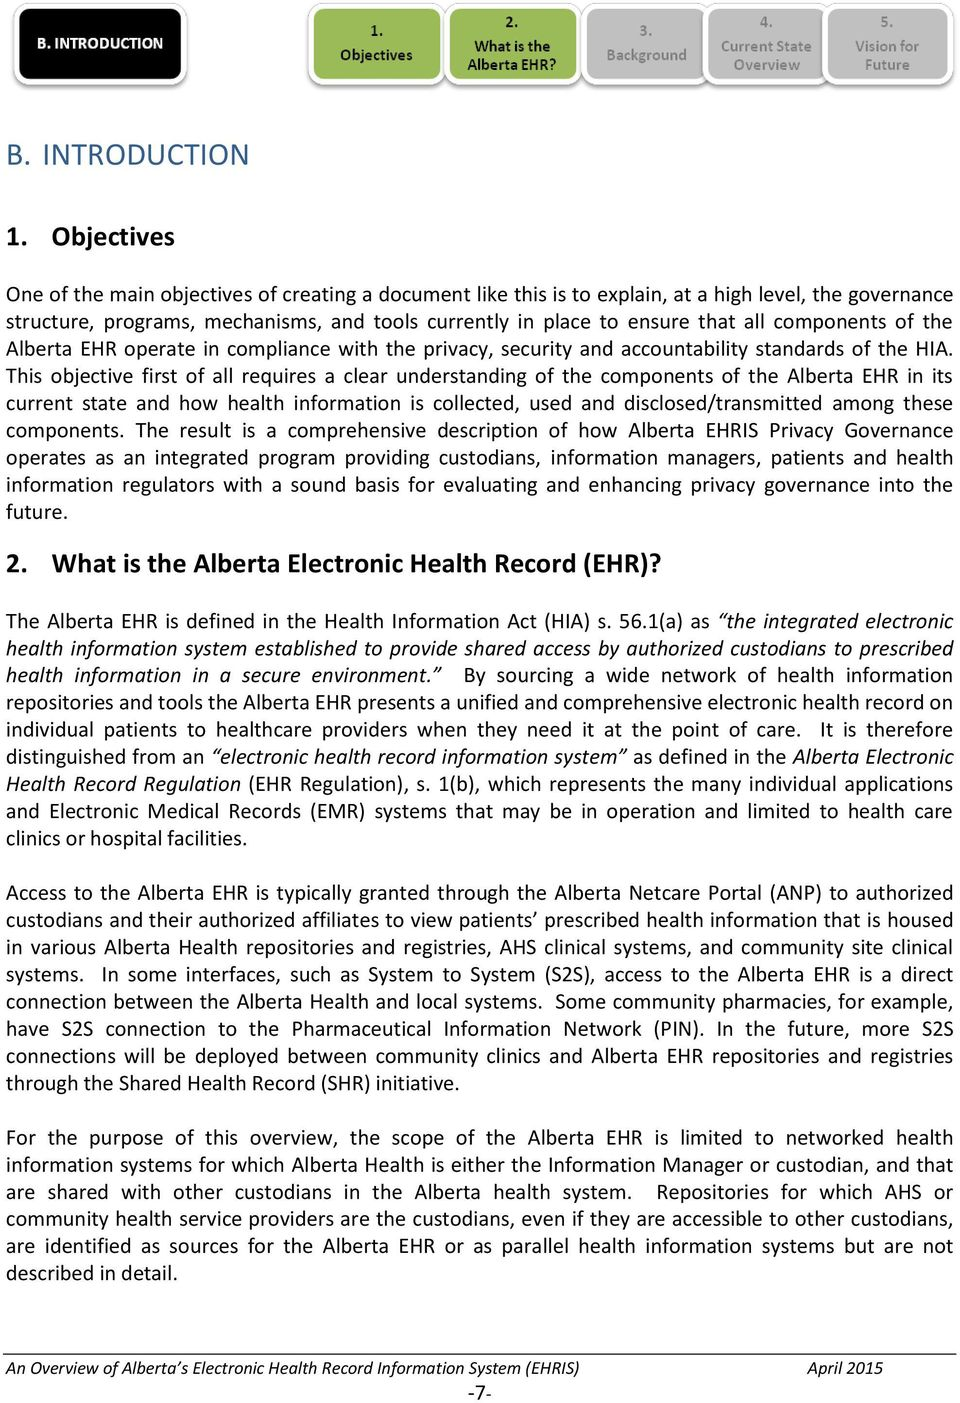 components of the Alberta EHR operate in compliance with the privacy, security and accountability standards of the HIA.